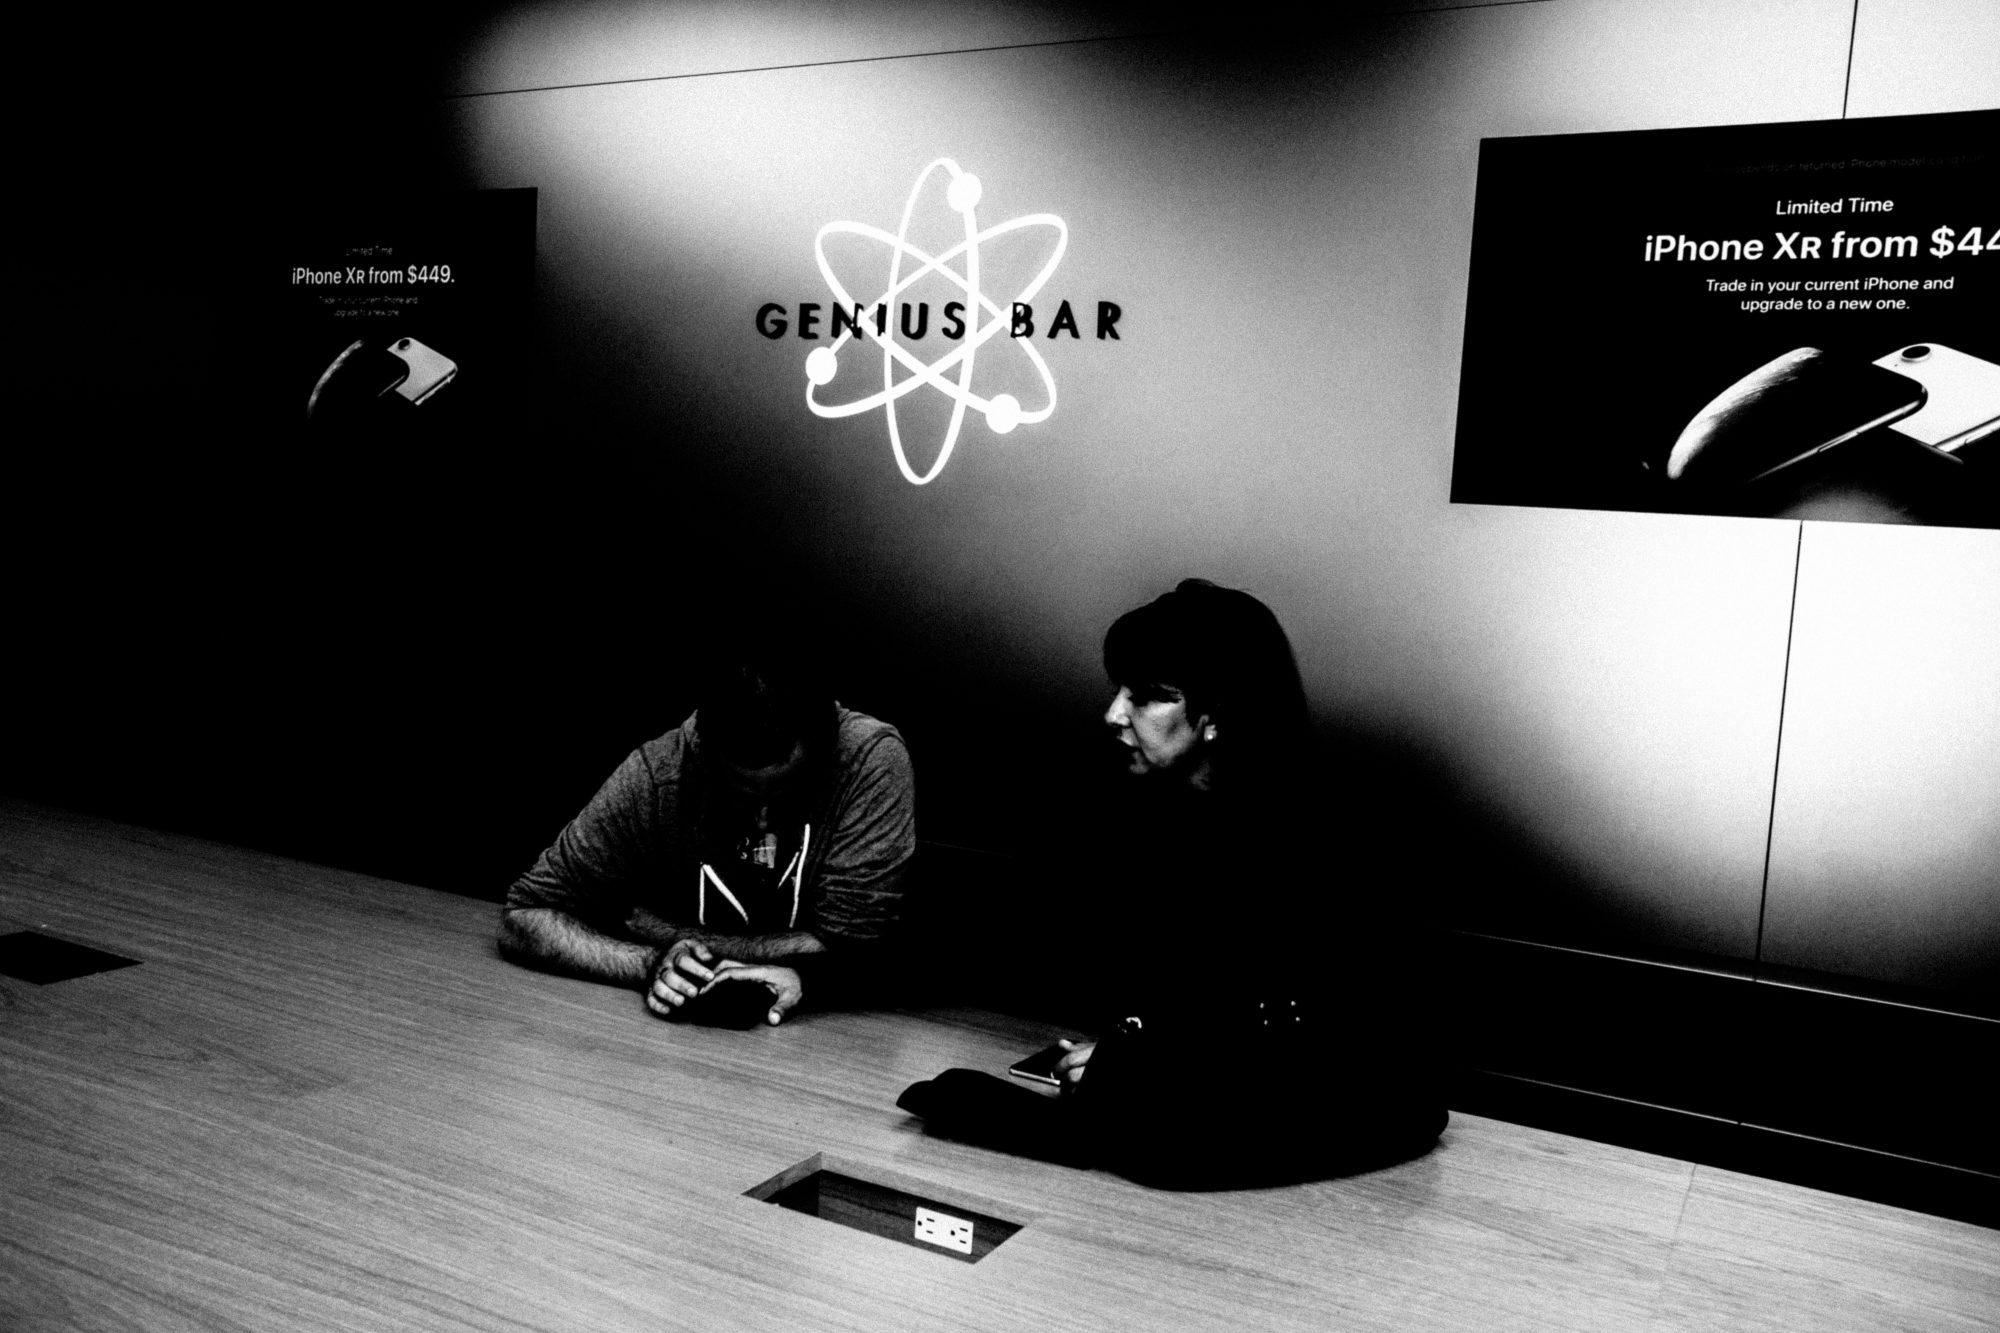 Genius Bar apple store